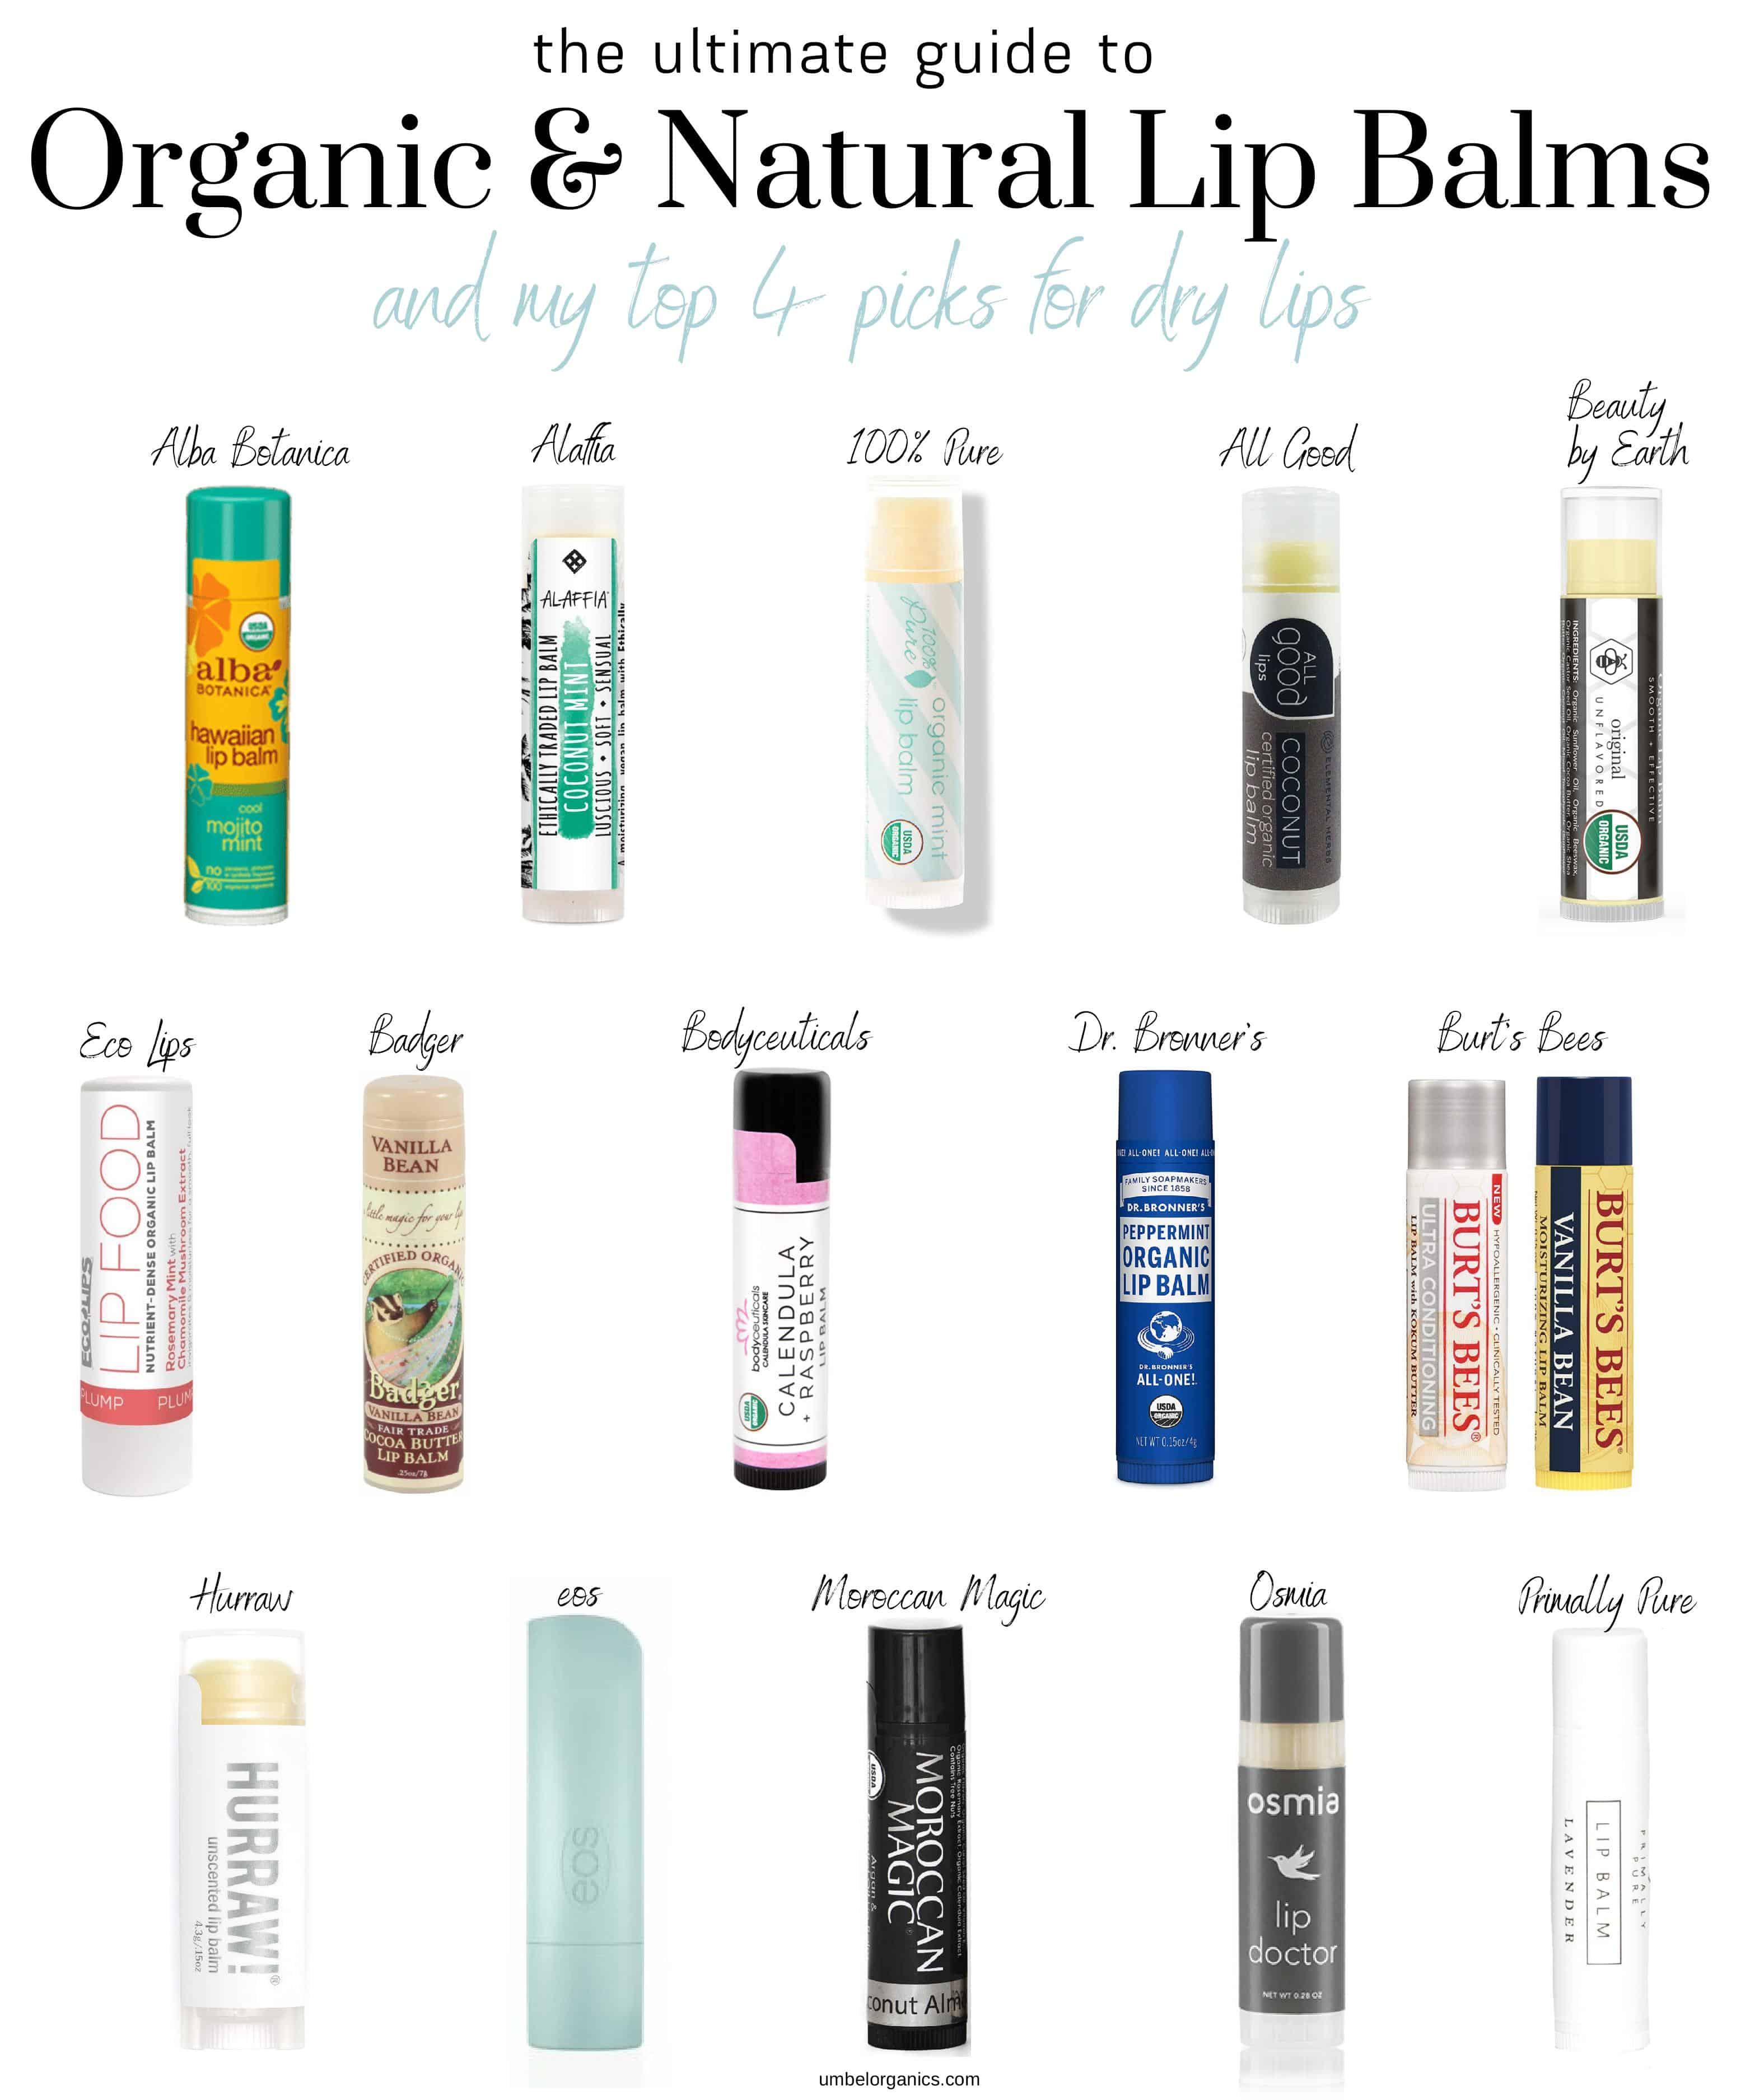 15 natural and organic lip balms tried and tested